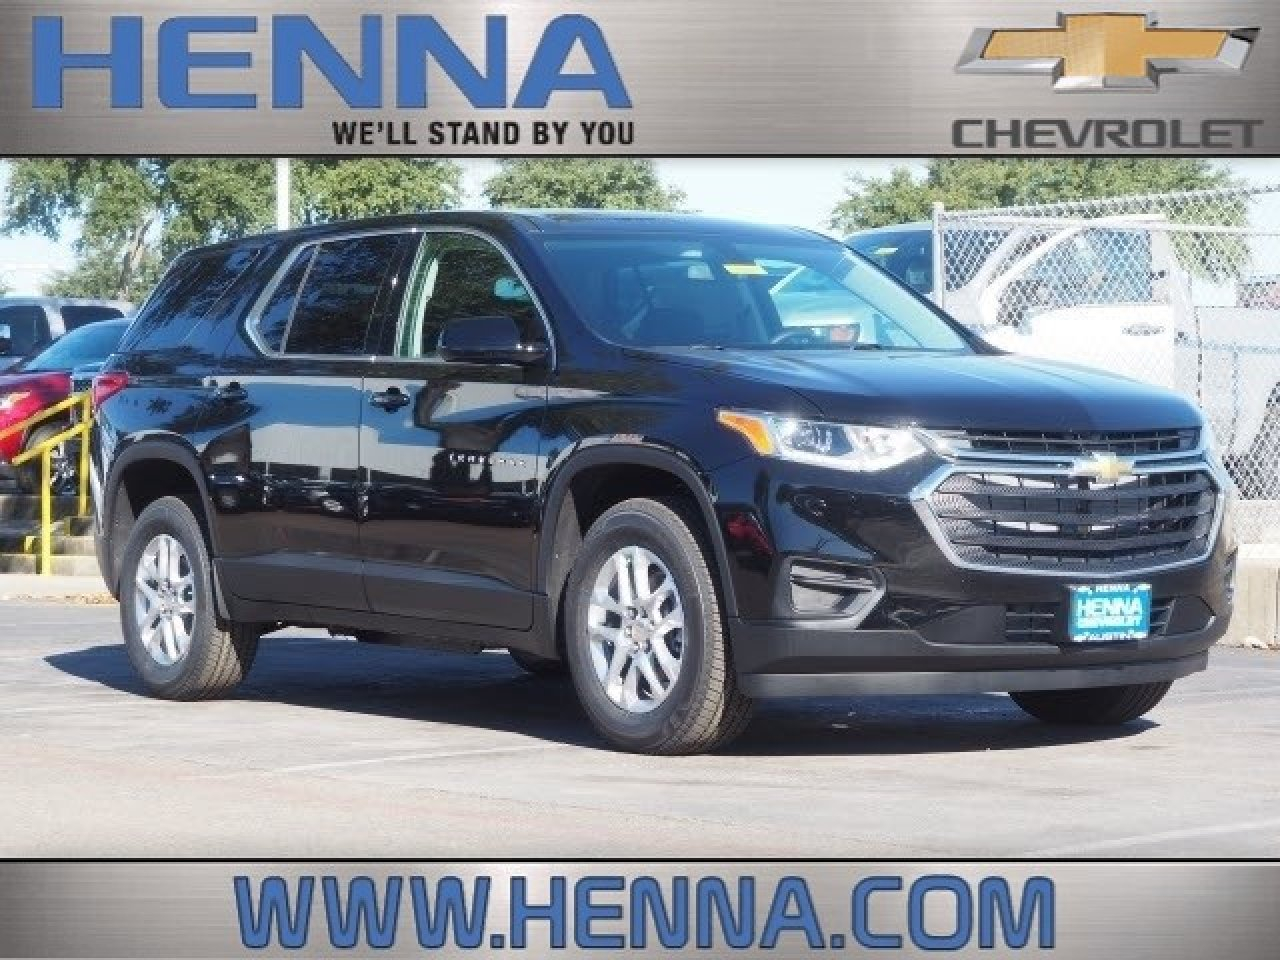 2020 Chevrolet Traverse Ls 1Gnerfkw0Lj202682   Henna 2021 Chevy Traverse Ls Pictures, Specs, Used